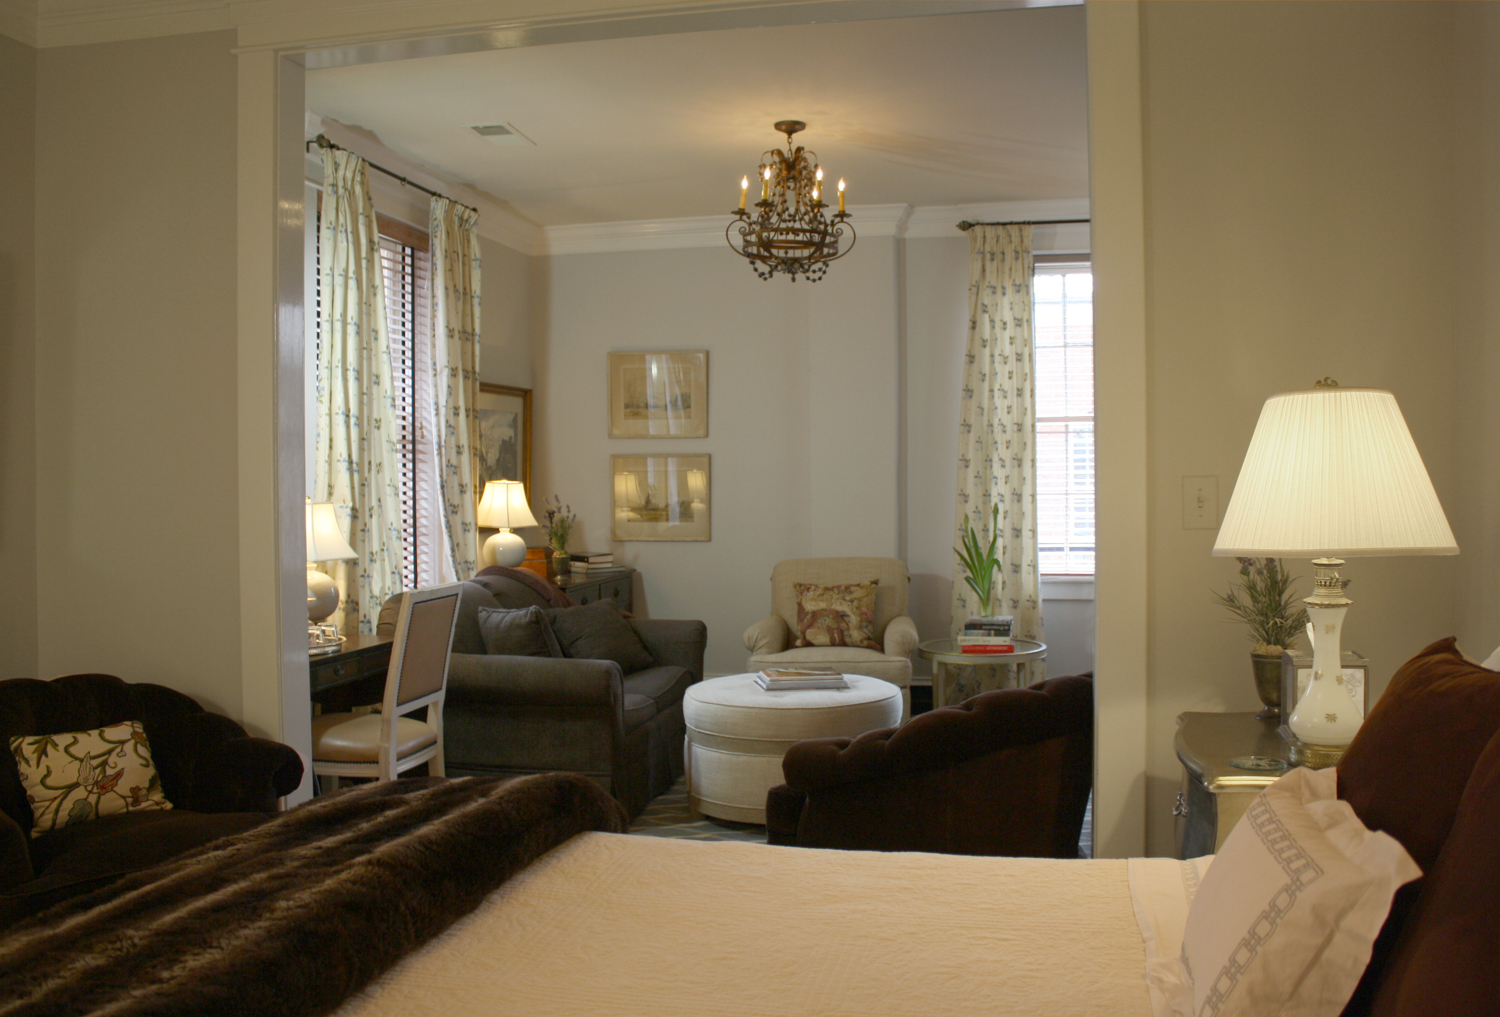 Myrtle Ellis Suite,The Inn at Court Square, Charlottesville, Virginia